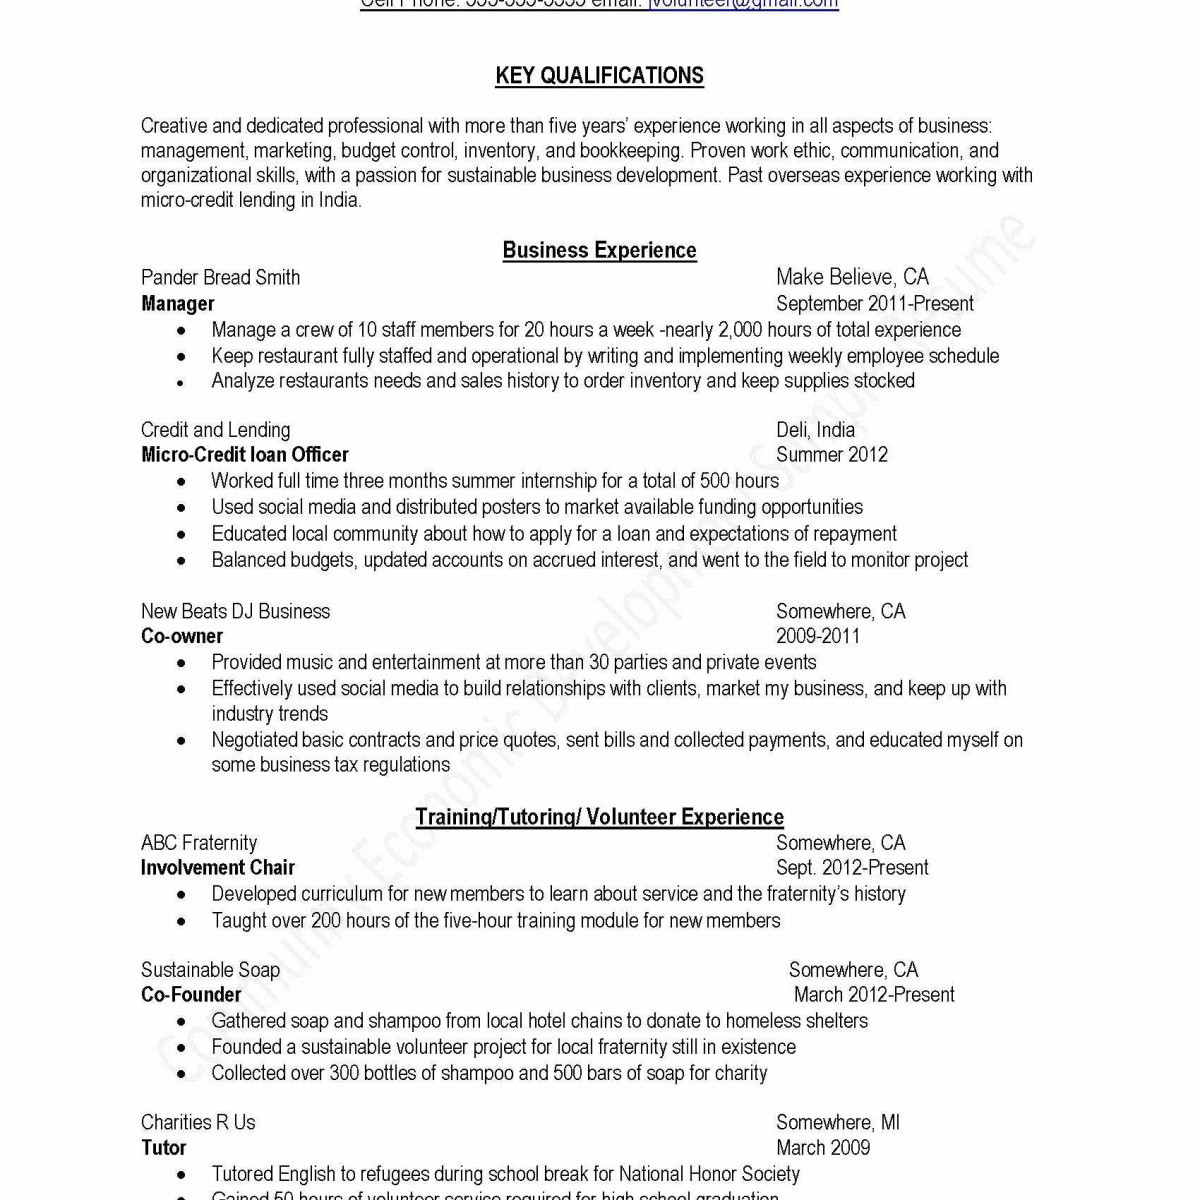 Resume to Work - Resume En Ingles Charming Sample College Application Resume Lovely